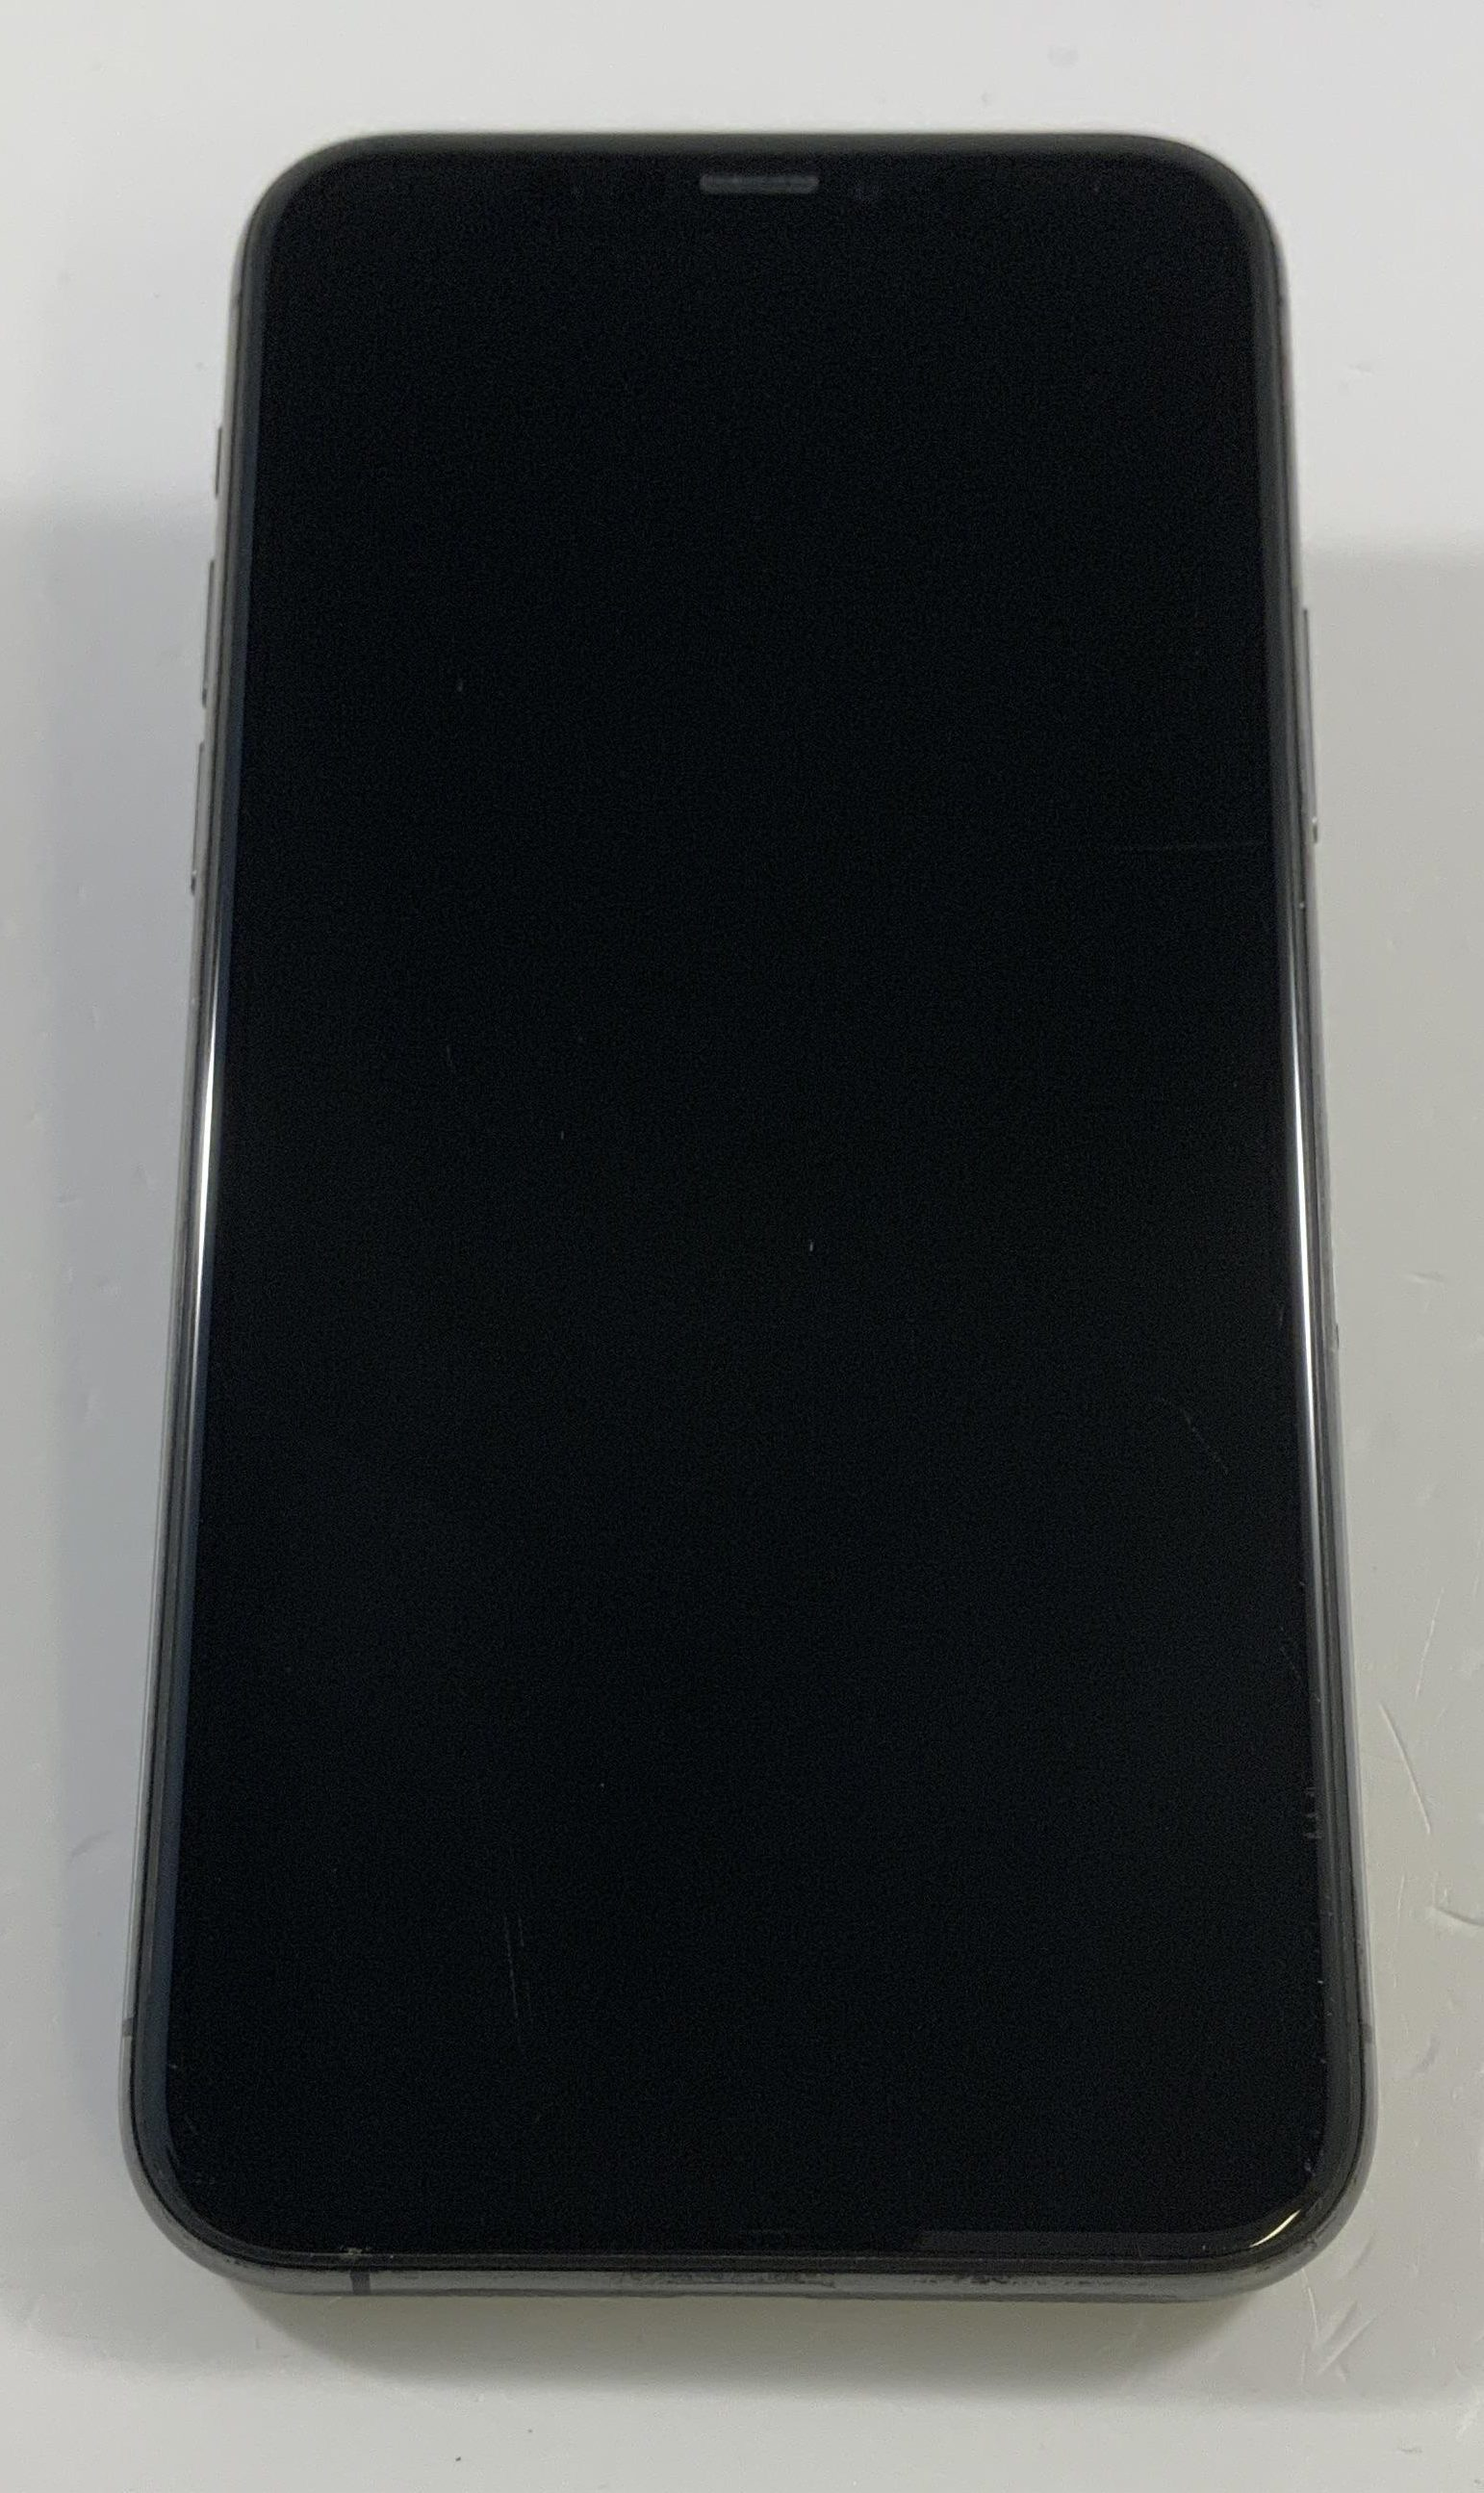 iPhone 11 Pro 256GB, 256GB, Space Gray, image 1